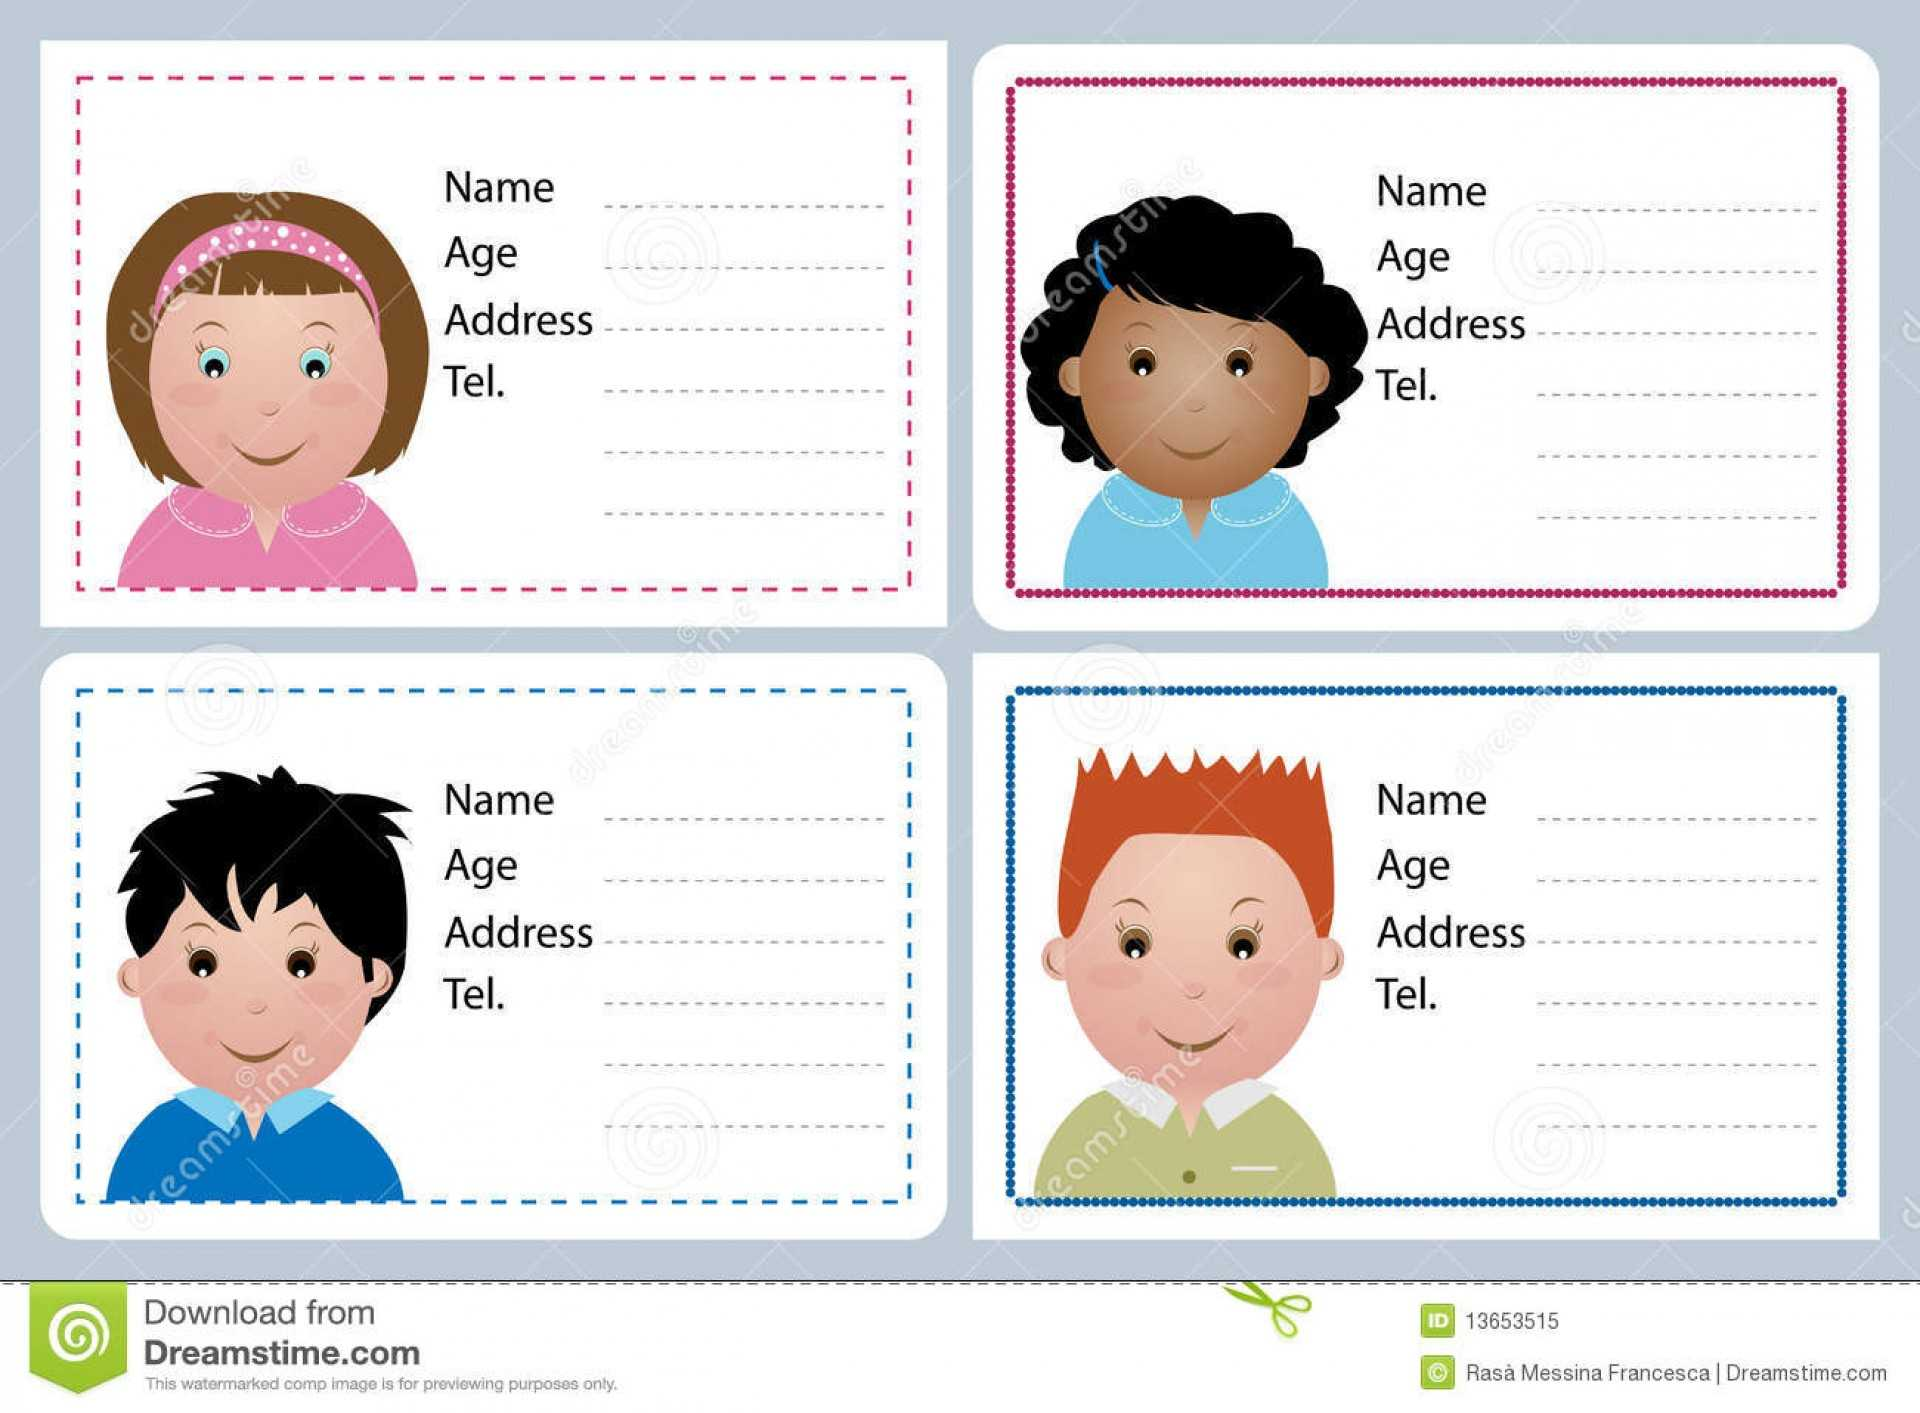 Astounding Child Id Card Template Free Ideas Download With Regard To Id Card Template For Kids